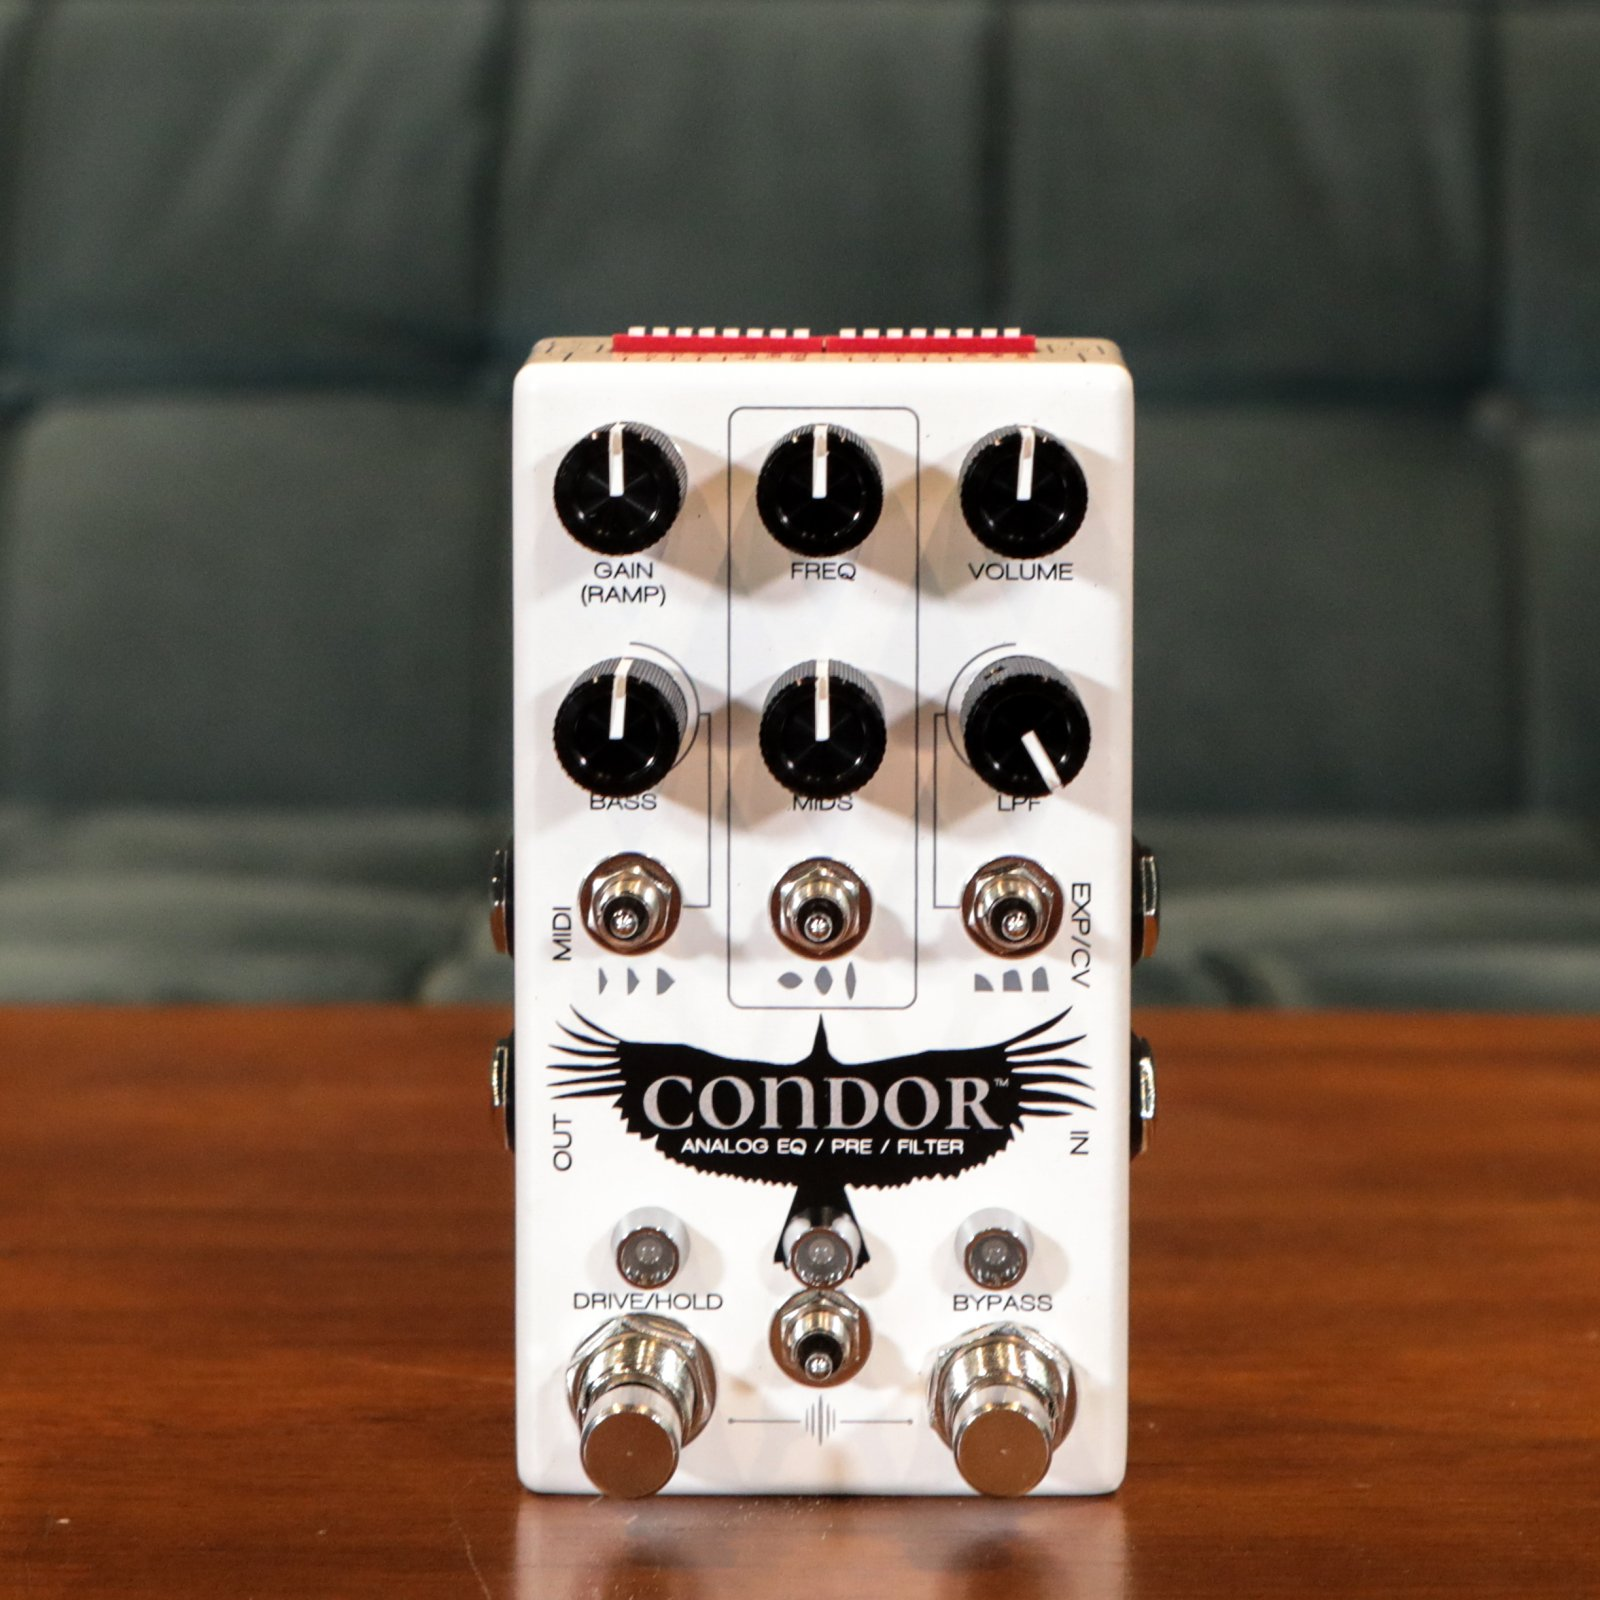 Chase Bliss Audio Condor: Analog Pre / EQ / Filter Guitar Pedal